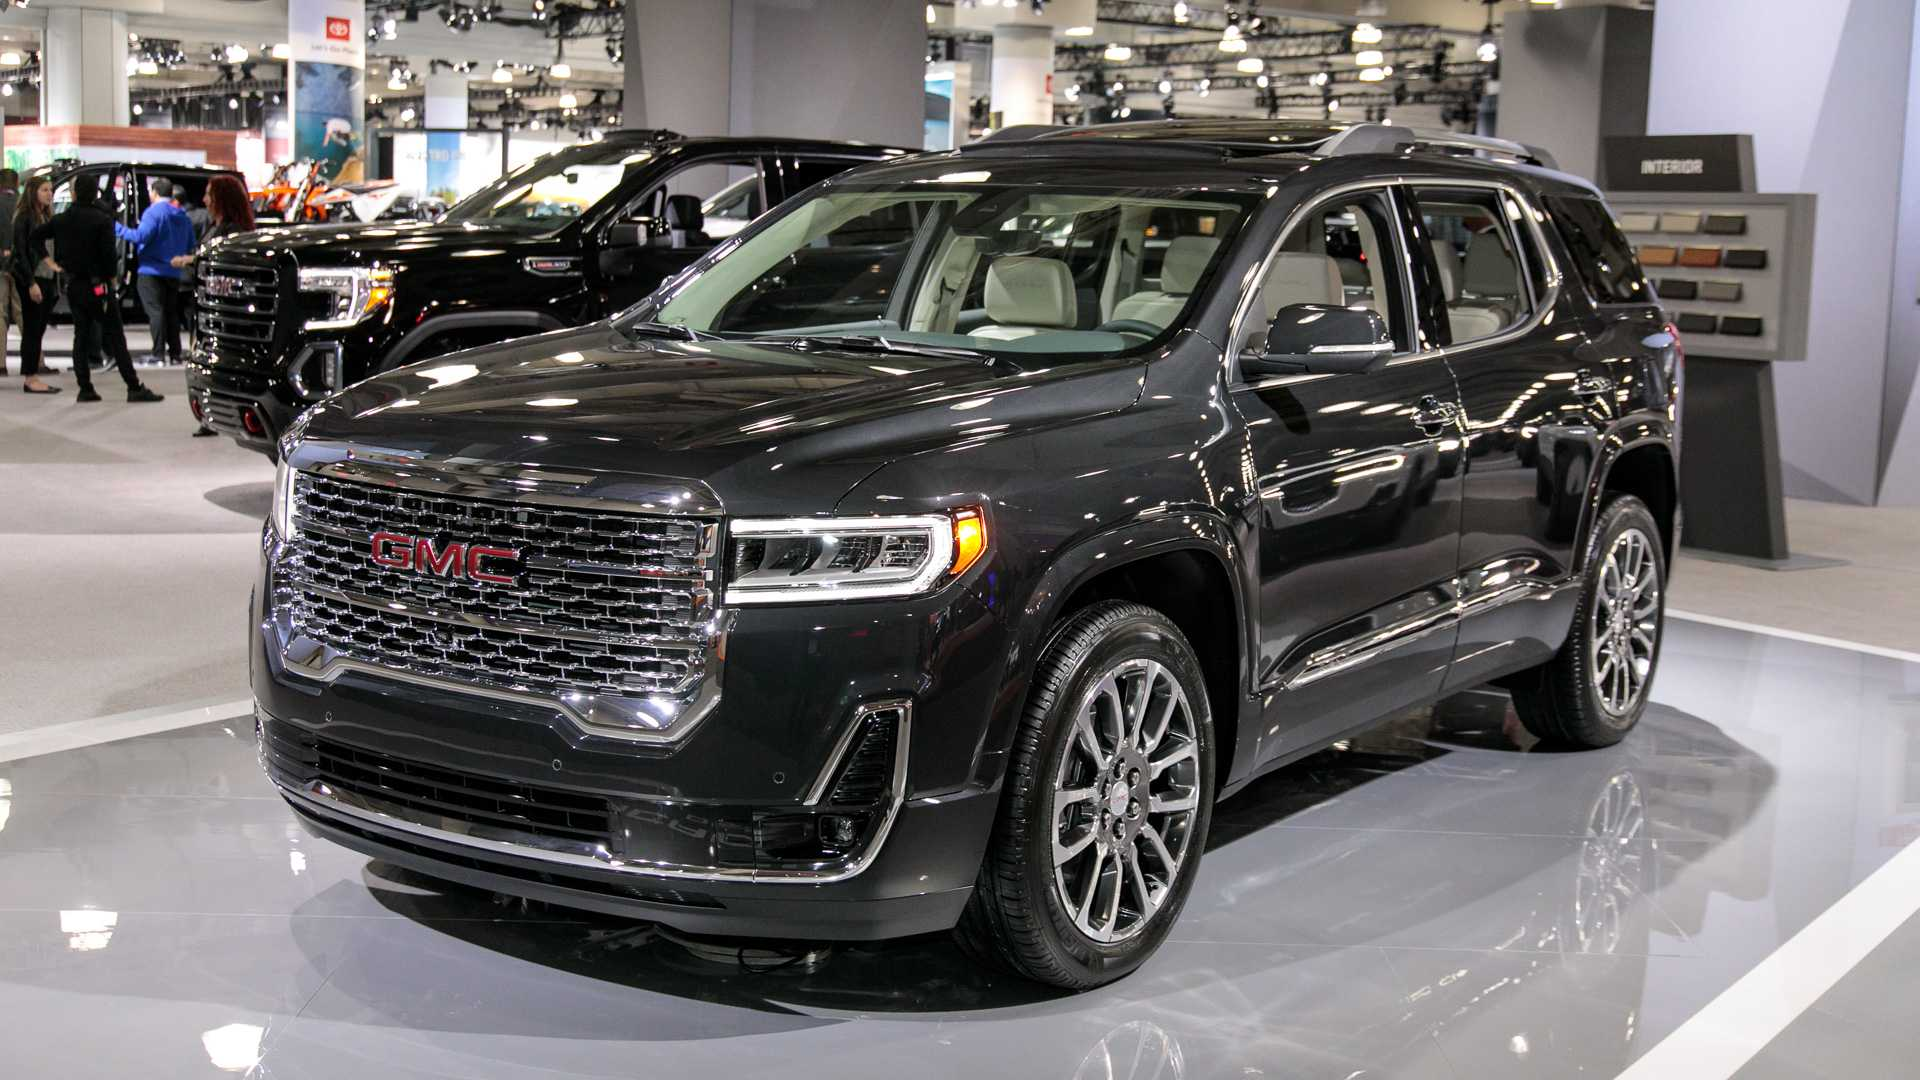 2020-gmc-acadia-live-photos.jpg